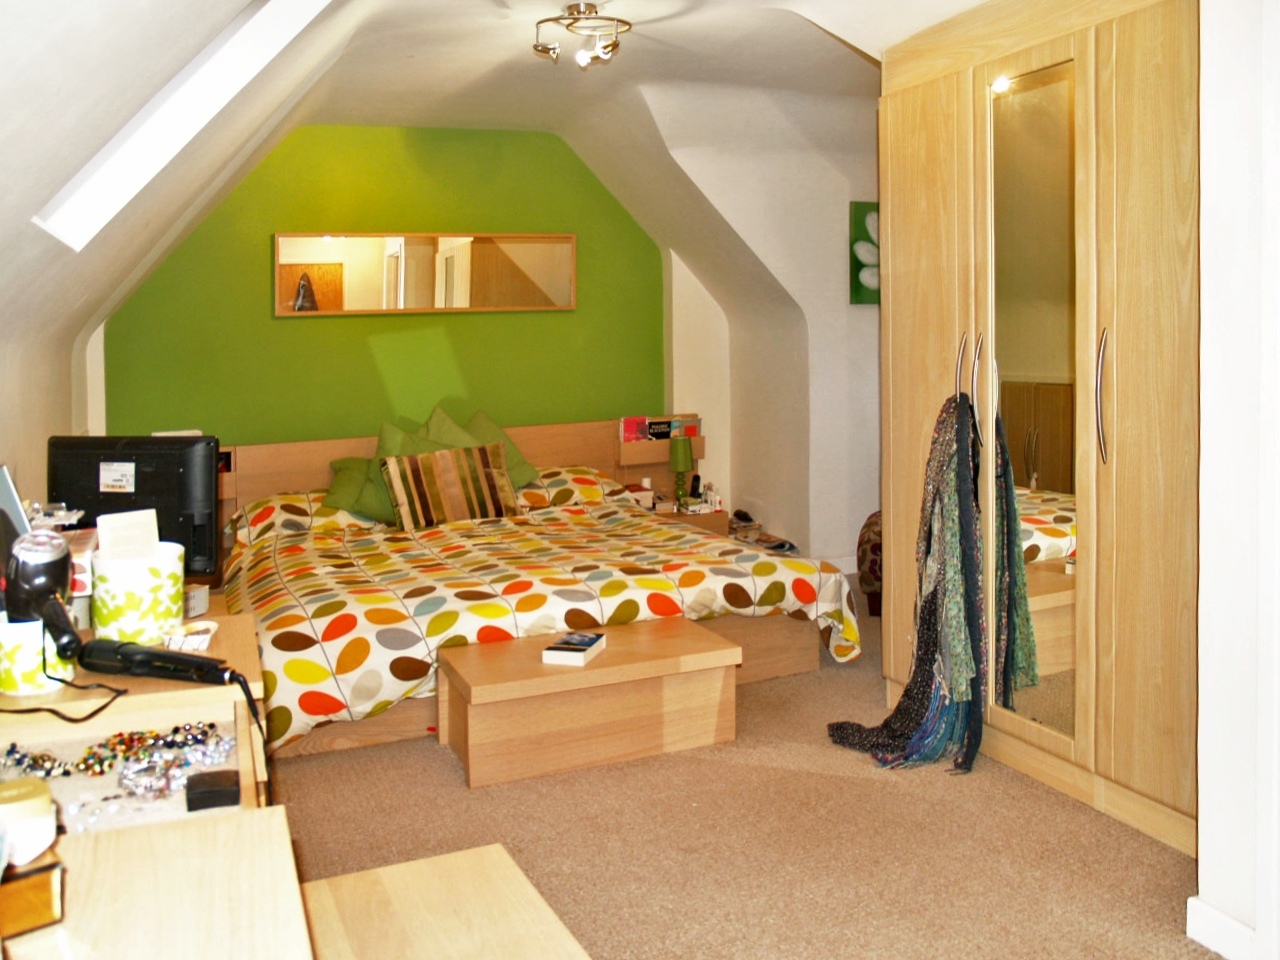 5 bedroom semi detached house SSTC in Solihull - photograph 8.